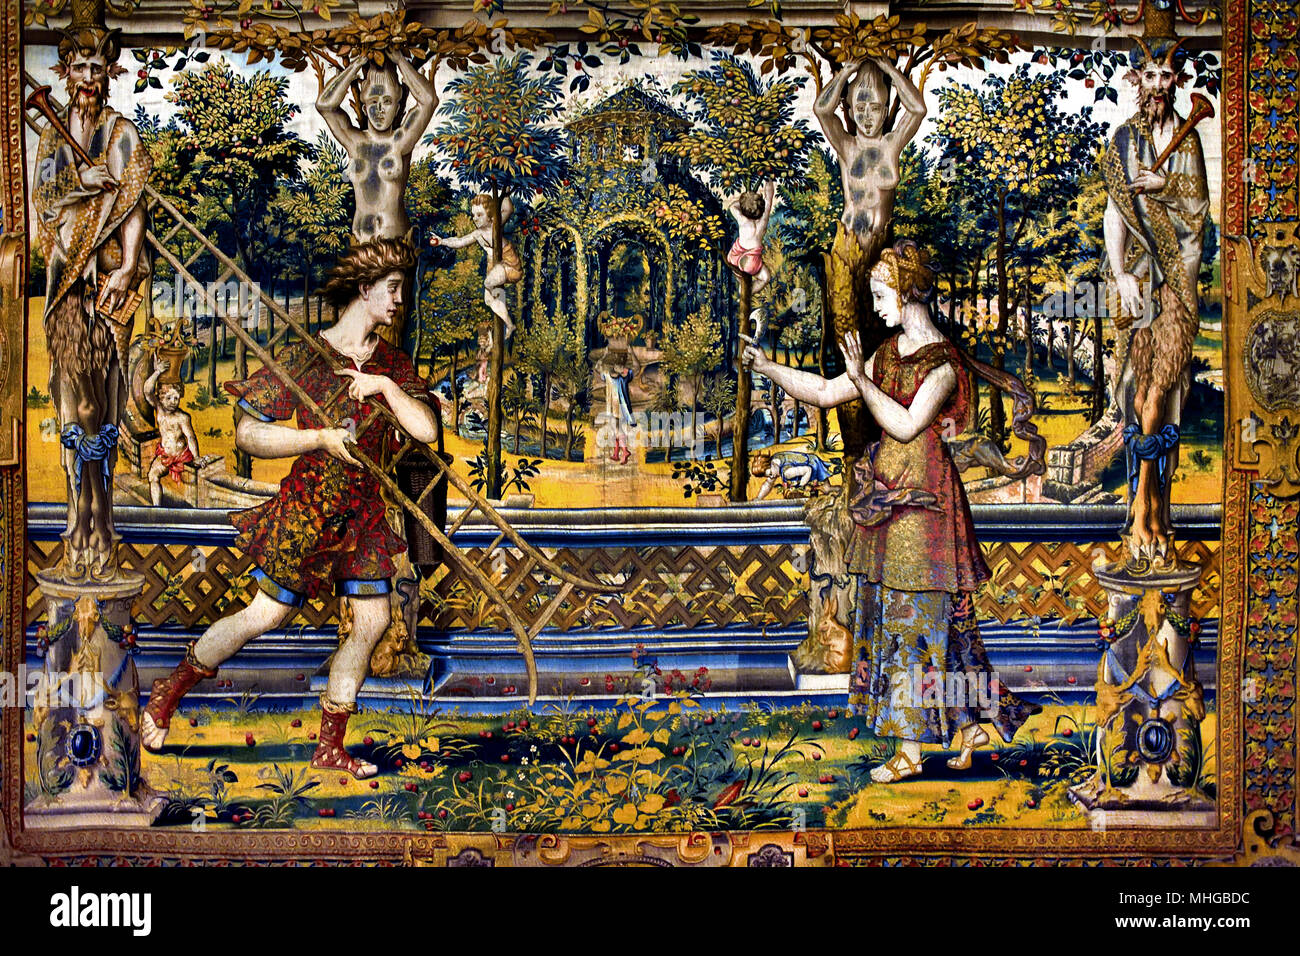 Vertumnus and Pomona ( Tapestry ) after Jan Pieter Coecke van Aelst 1502-1550 Belgian, Belgium, Flemish, ( Wool, Silk, Gold, ) The short mythical story of Vertumnus and Pomona is one of the famous legends that feature in the mythology of ancient civilizations. Discover the myths about the ancient gods, goddesses, demigods and heroes and the terrifying monsters and creatures they encountered on their perilous journeys and quests. - Stock Image